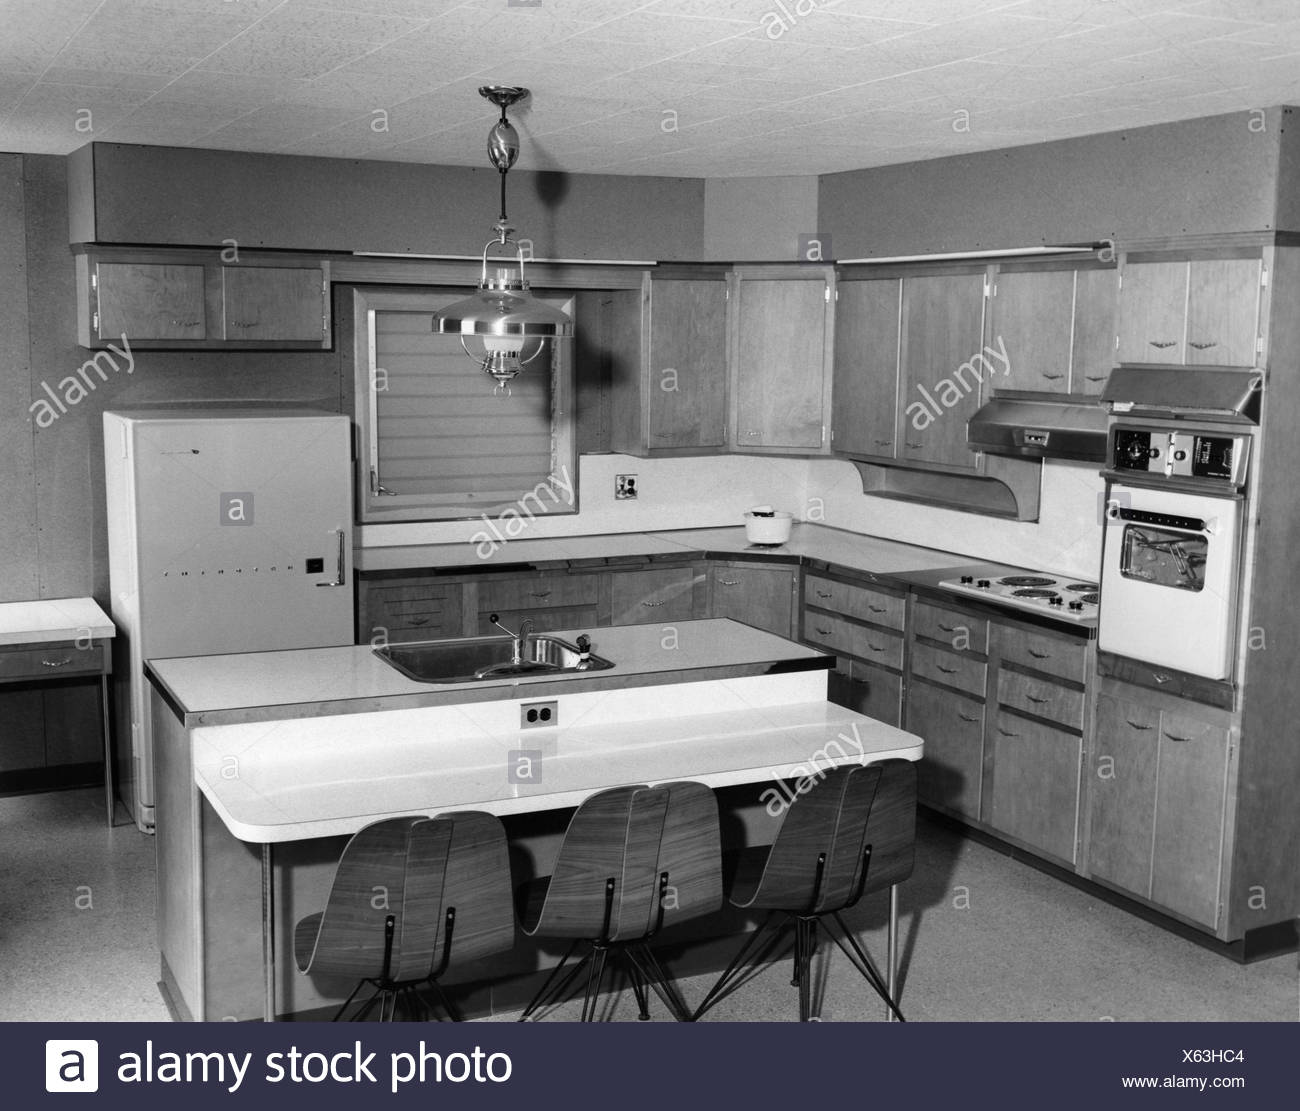 Interior of kitchen in 1950s style stock image